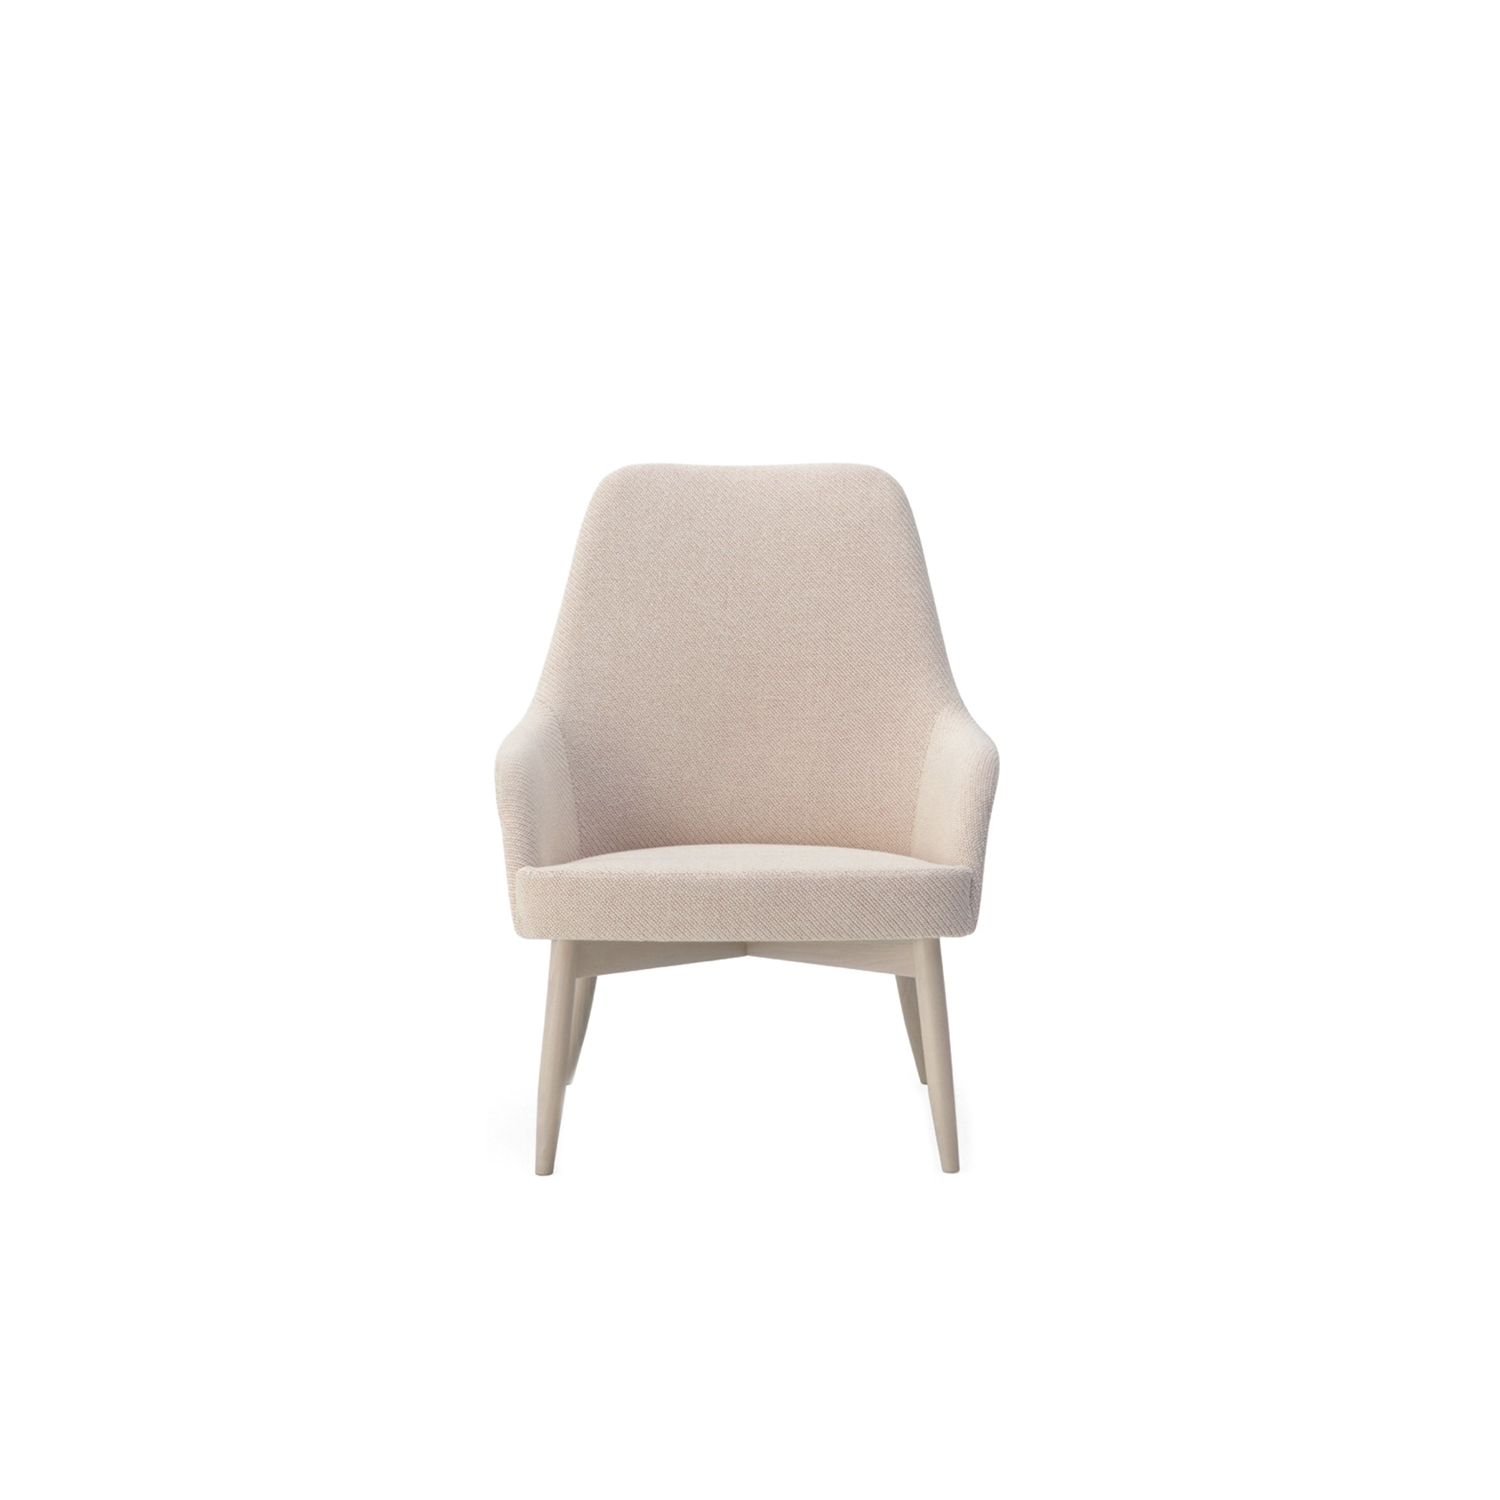 Spy High Lounge Chair - Lounge chair and Spy High in solid beech or lacquered steel, Spy Wingback in solid beech, all three models with upholstered plywood shells.  The chair comes with standard felt floor pads.  | Matter of Stuff